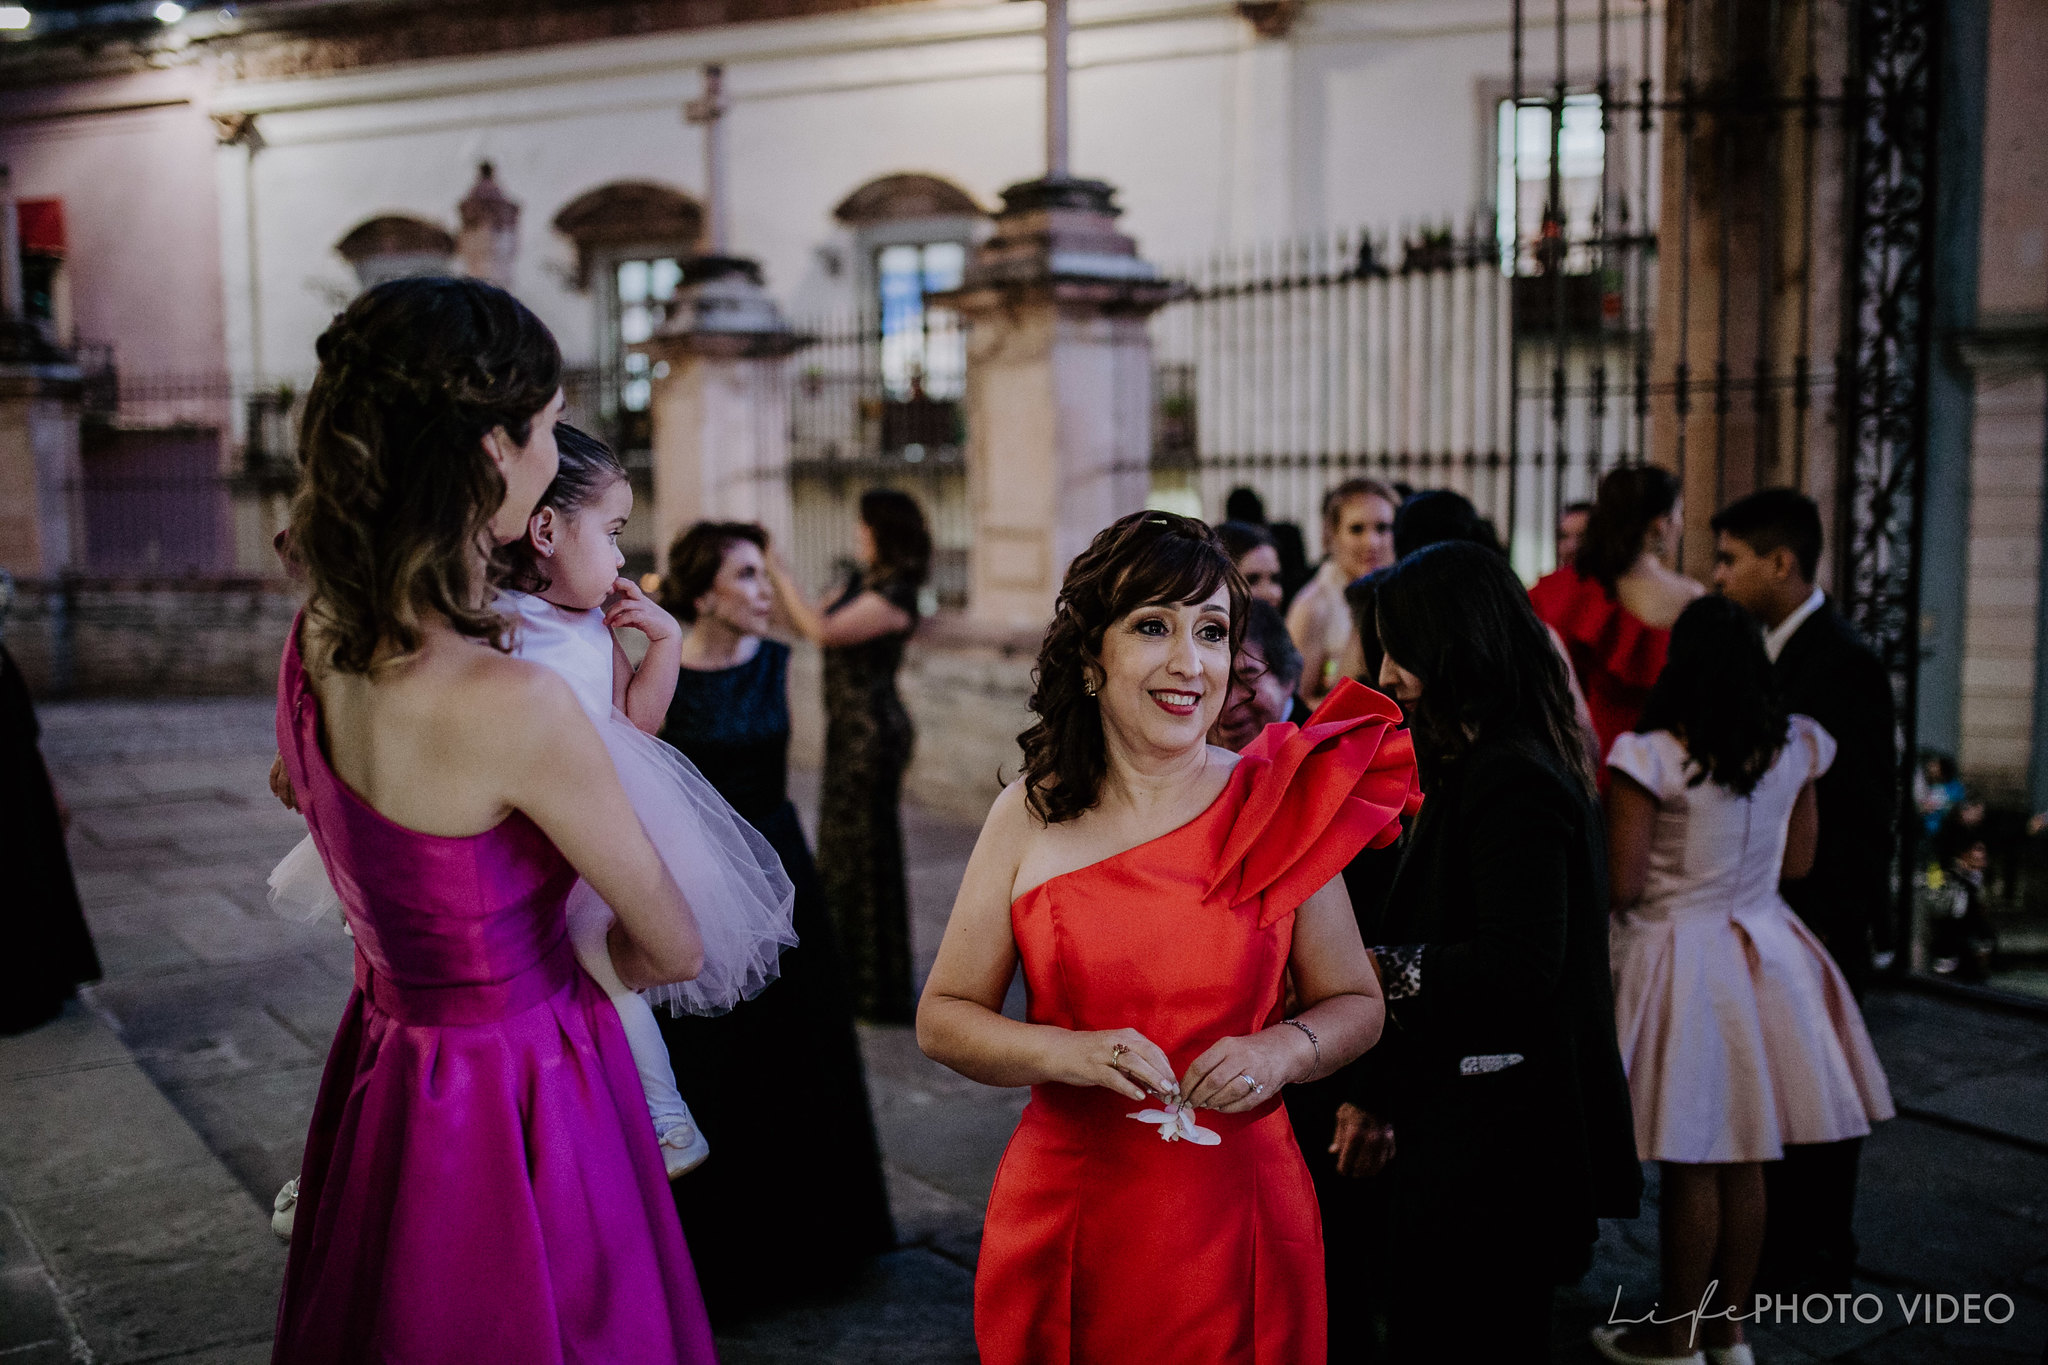 Guanajuato_Wedding_Photographer_LifePhotoVideo